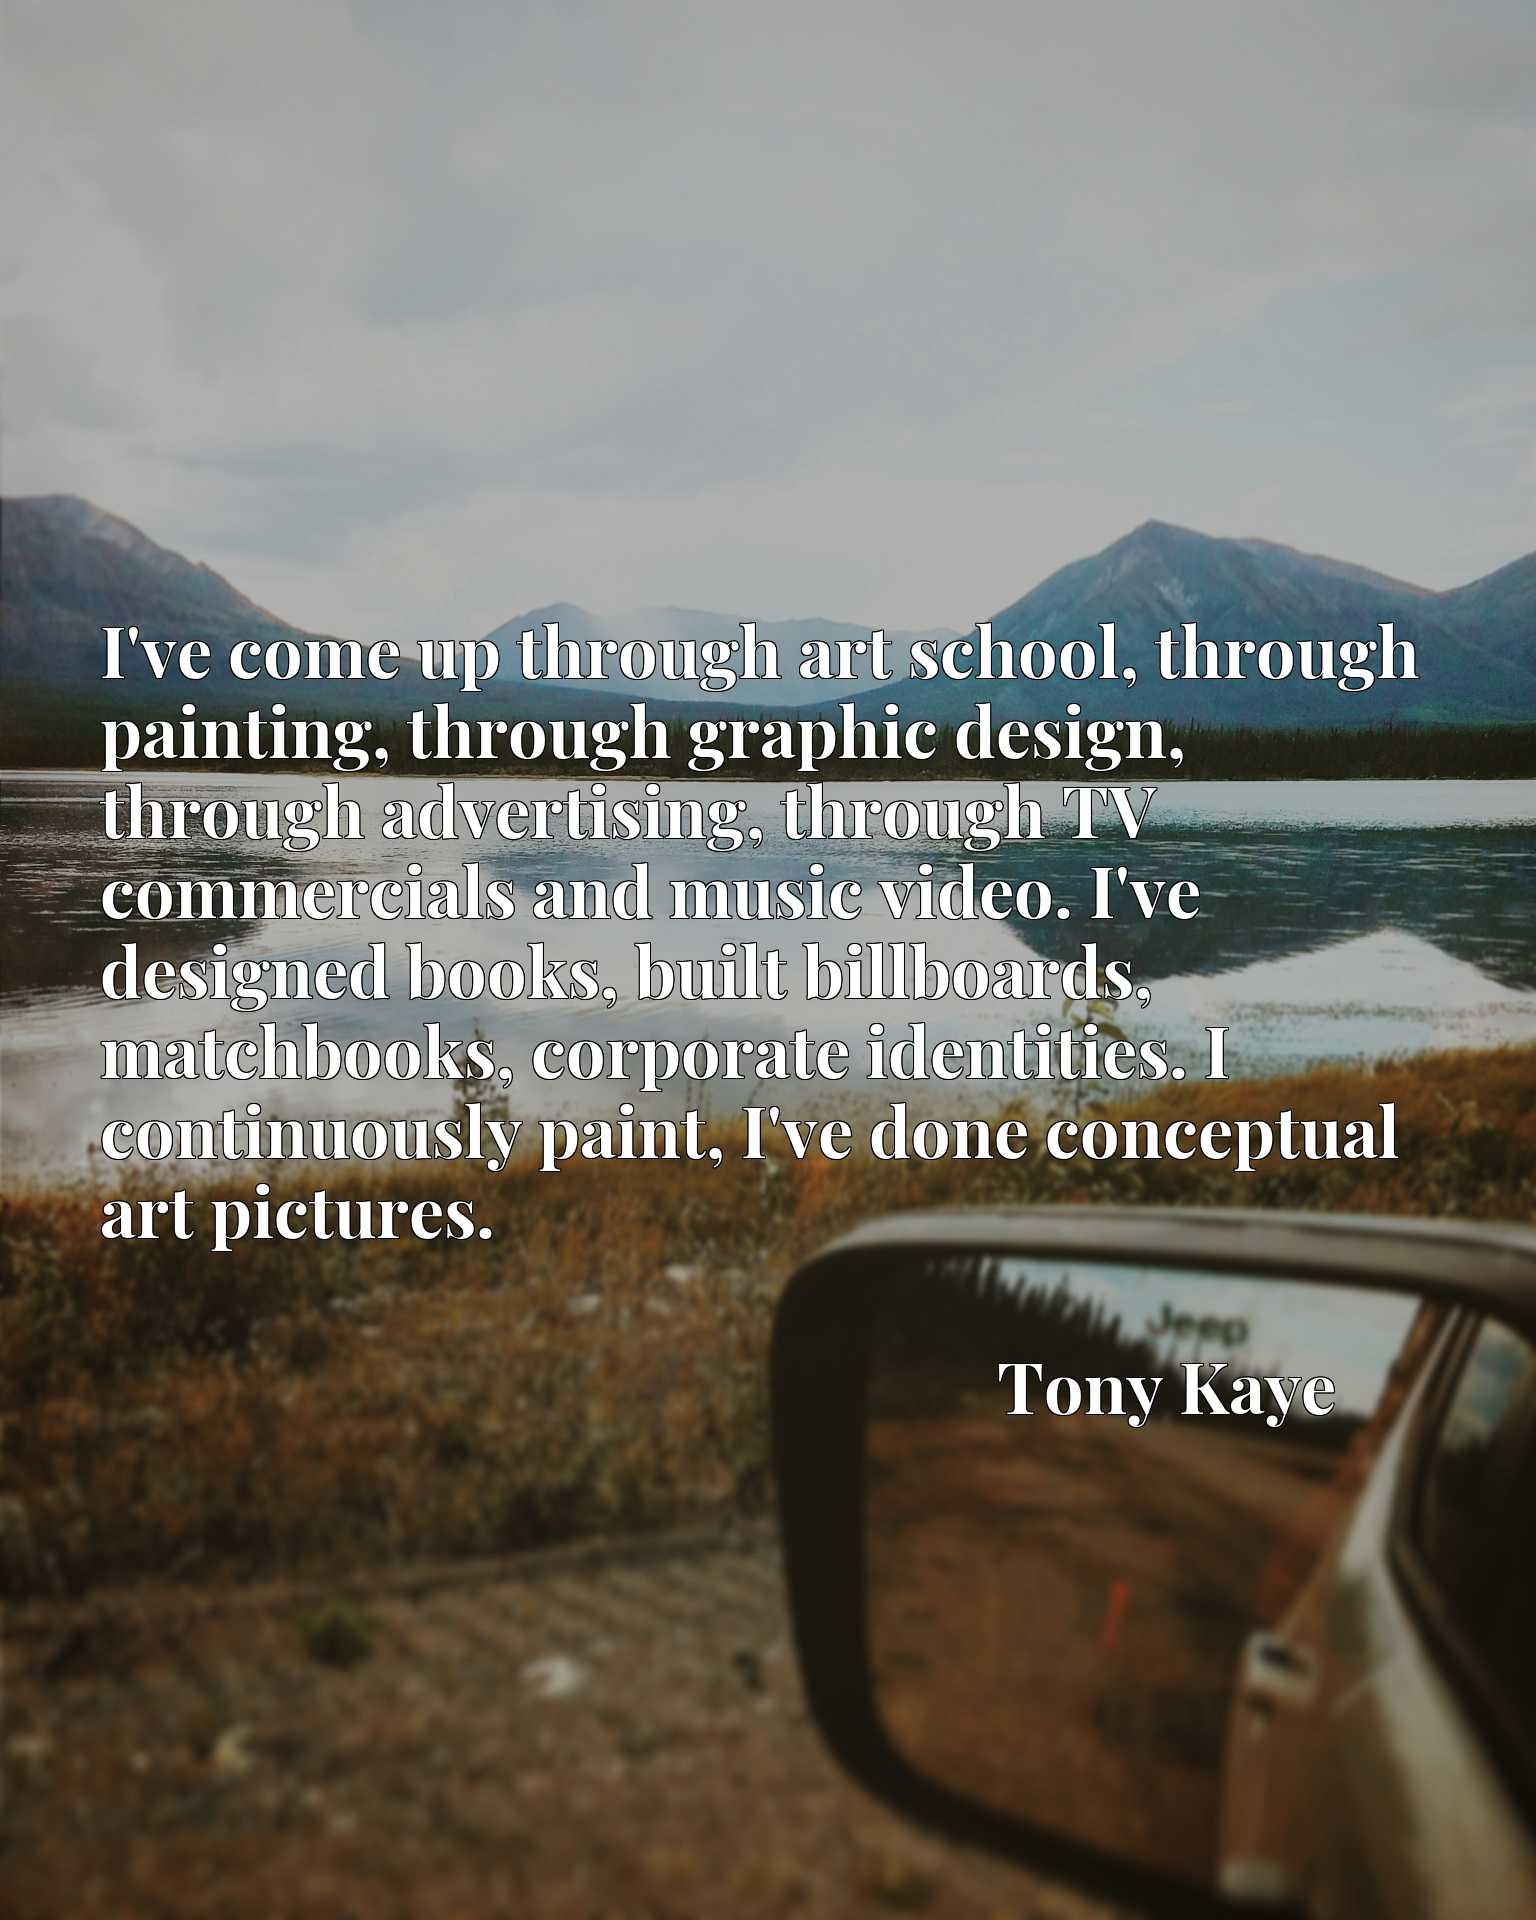 I've come up through art school, through painting, through graphic design, through advertising, through TV commercials and music video. I've designed books, built billboards, matchbooks, corporate identities. I continuously paint, I've done conceptual art pictures.